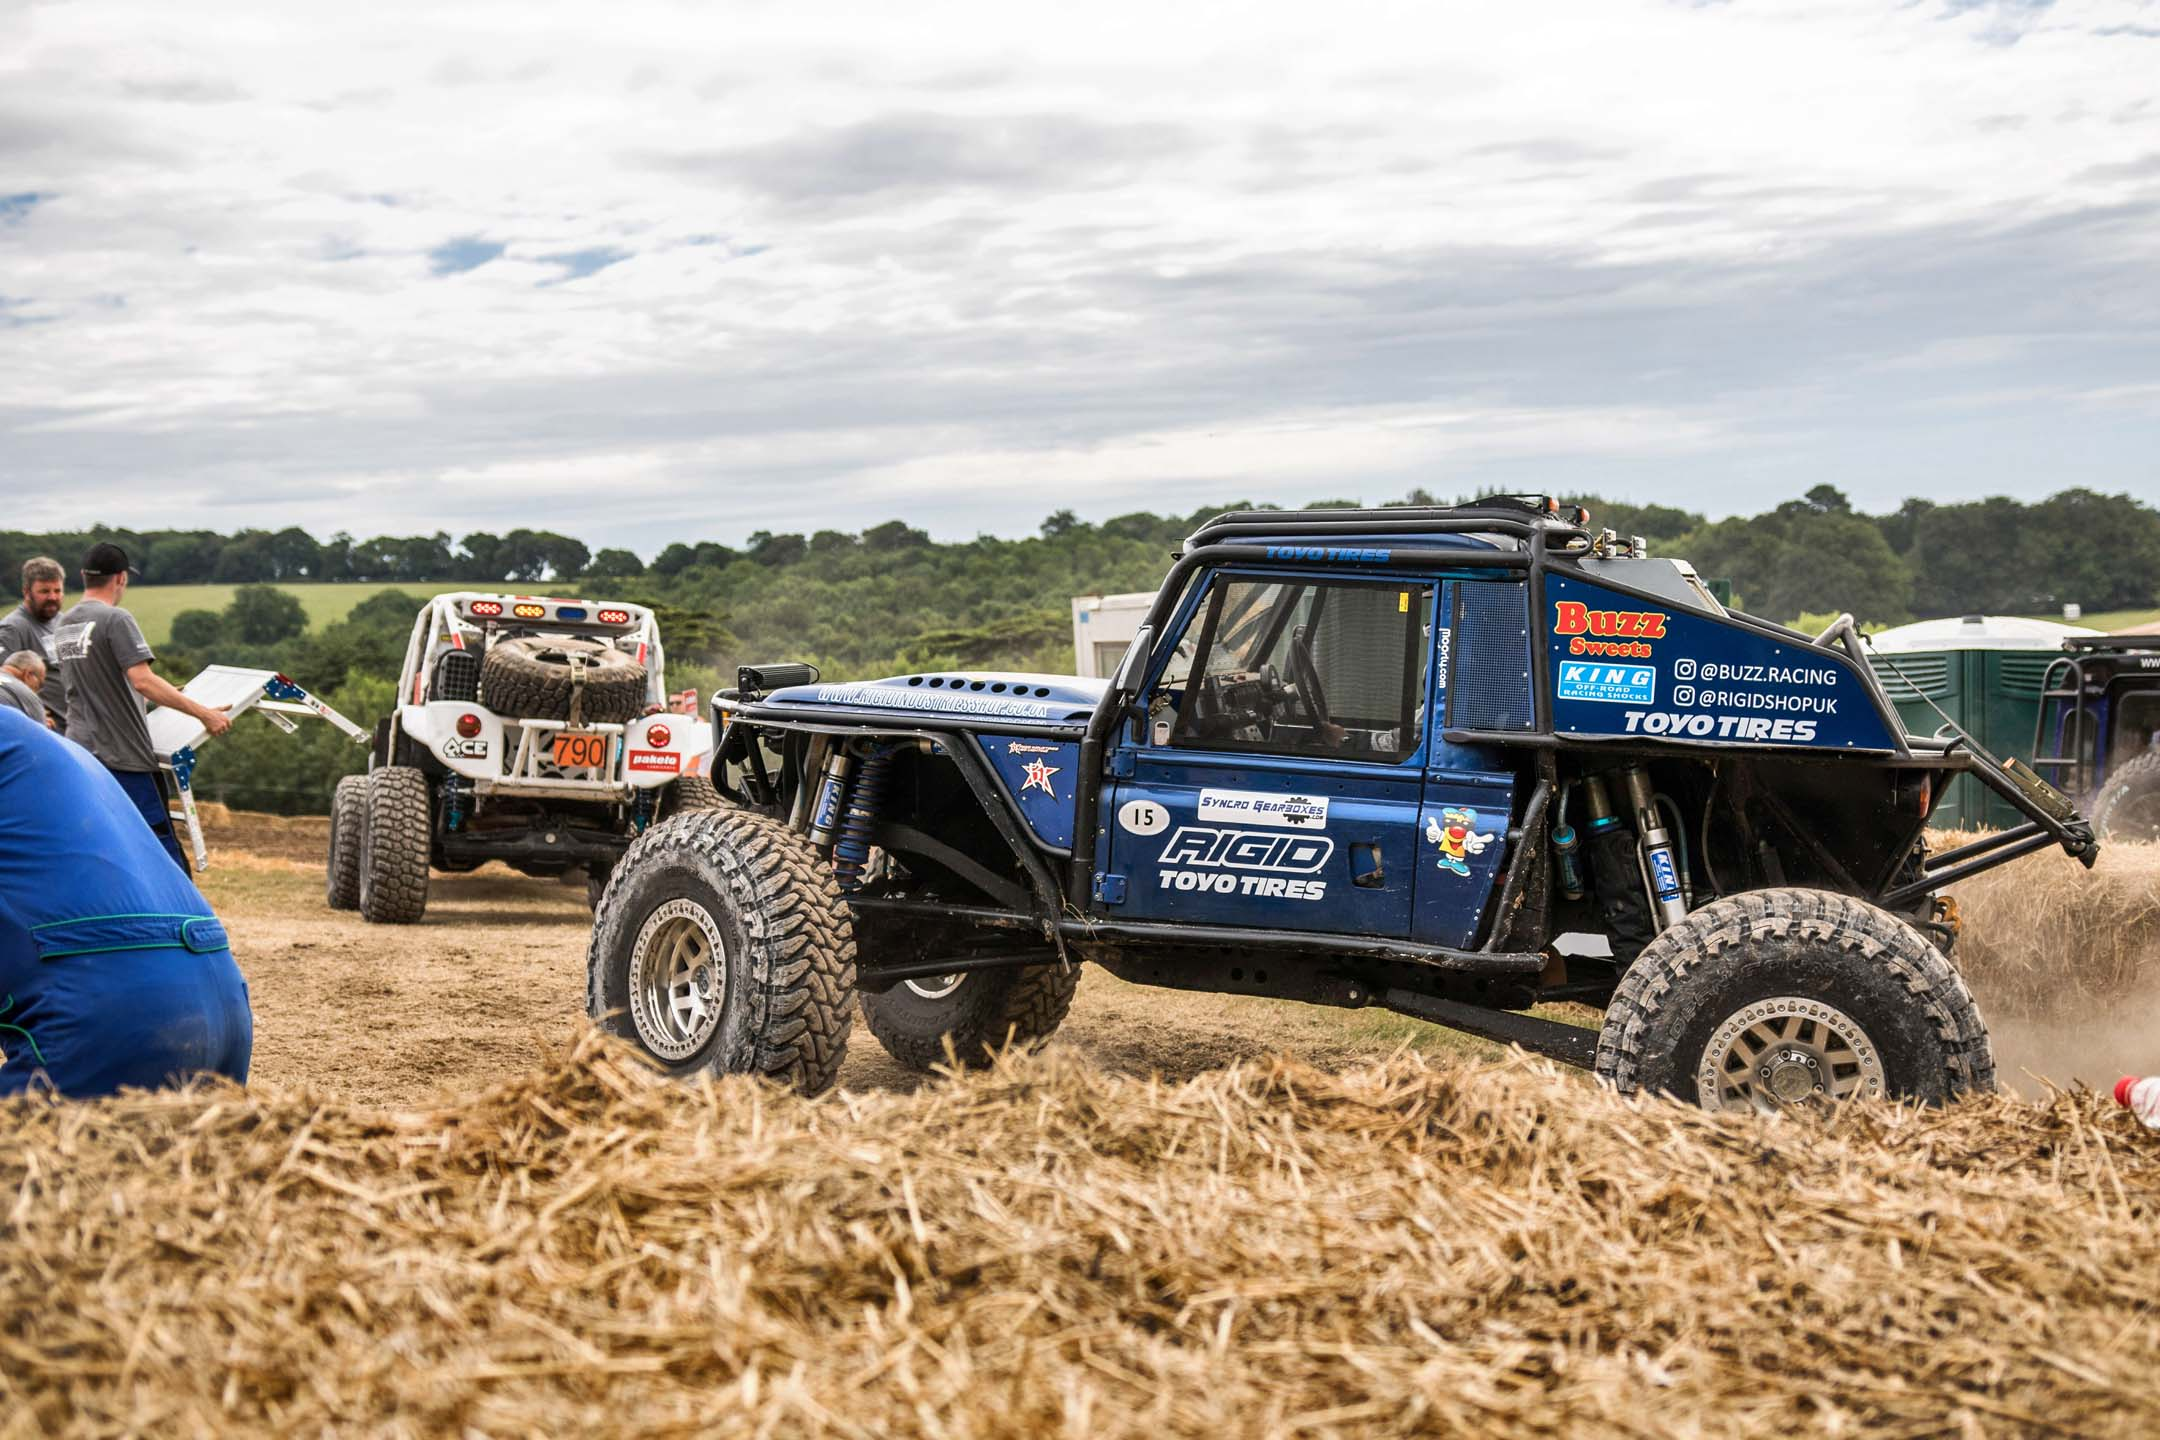 As Goodwood has expanded, the course has grown from just the tarmac climb to off-road and rally sections. Here, heavily modified machines make ready to head out onto the ruts and jumps of the off-road course.